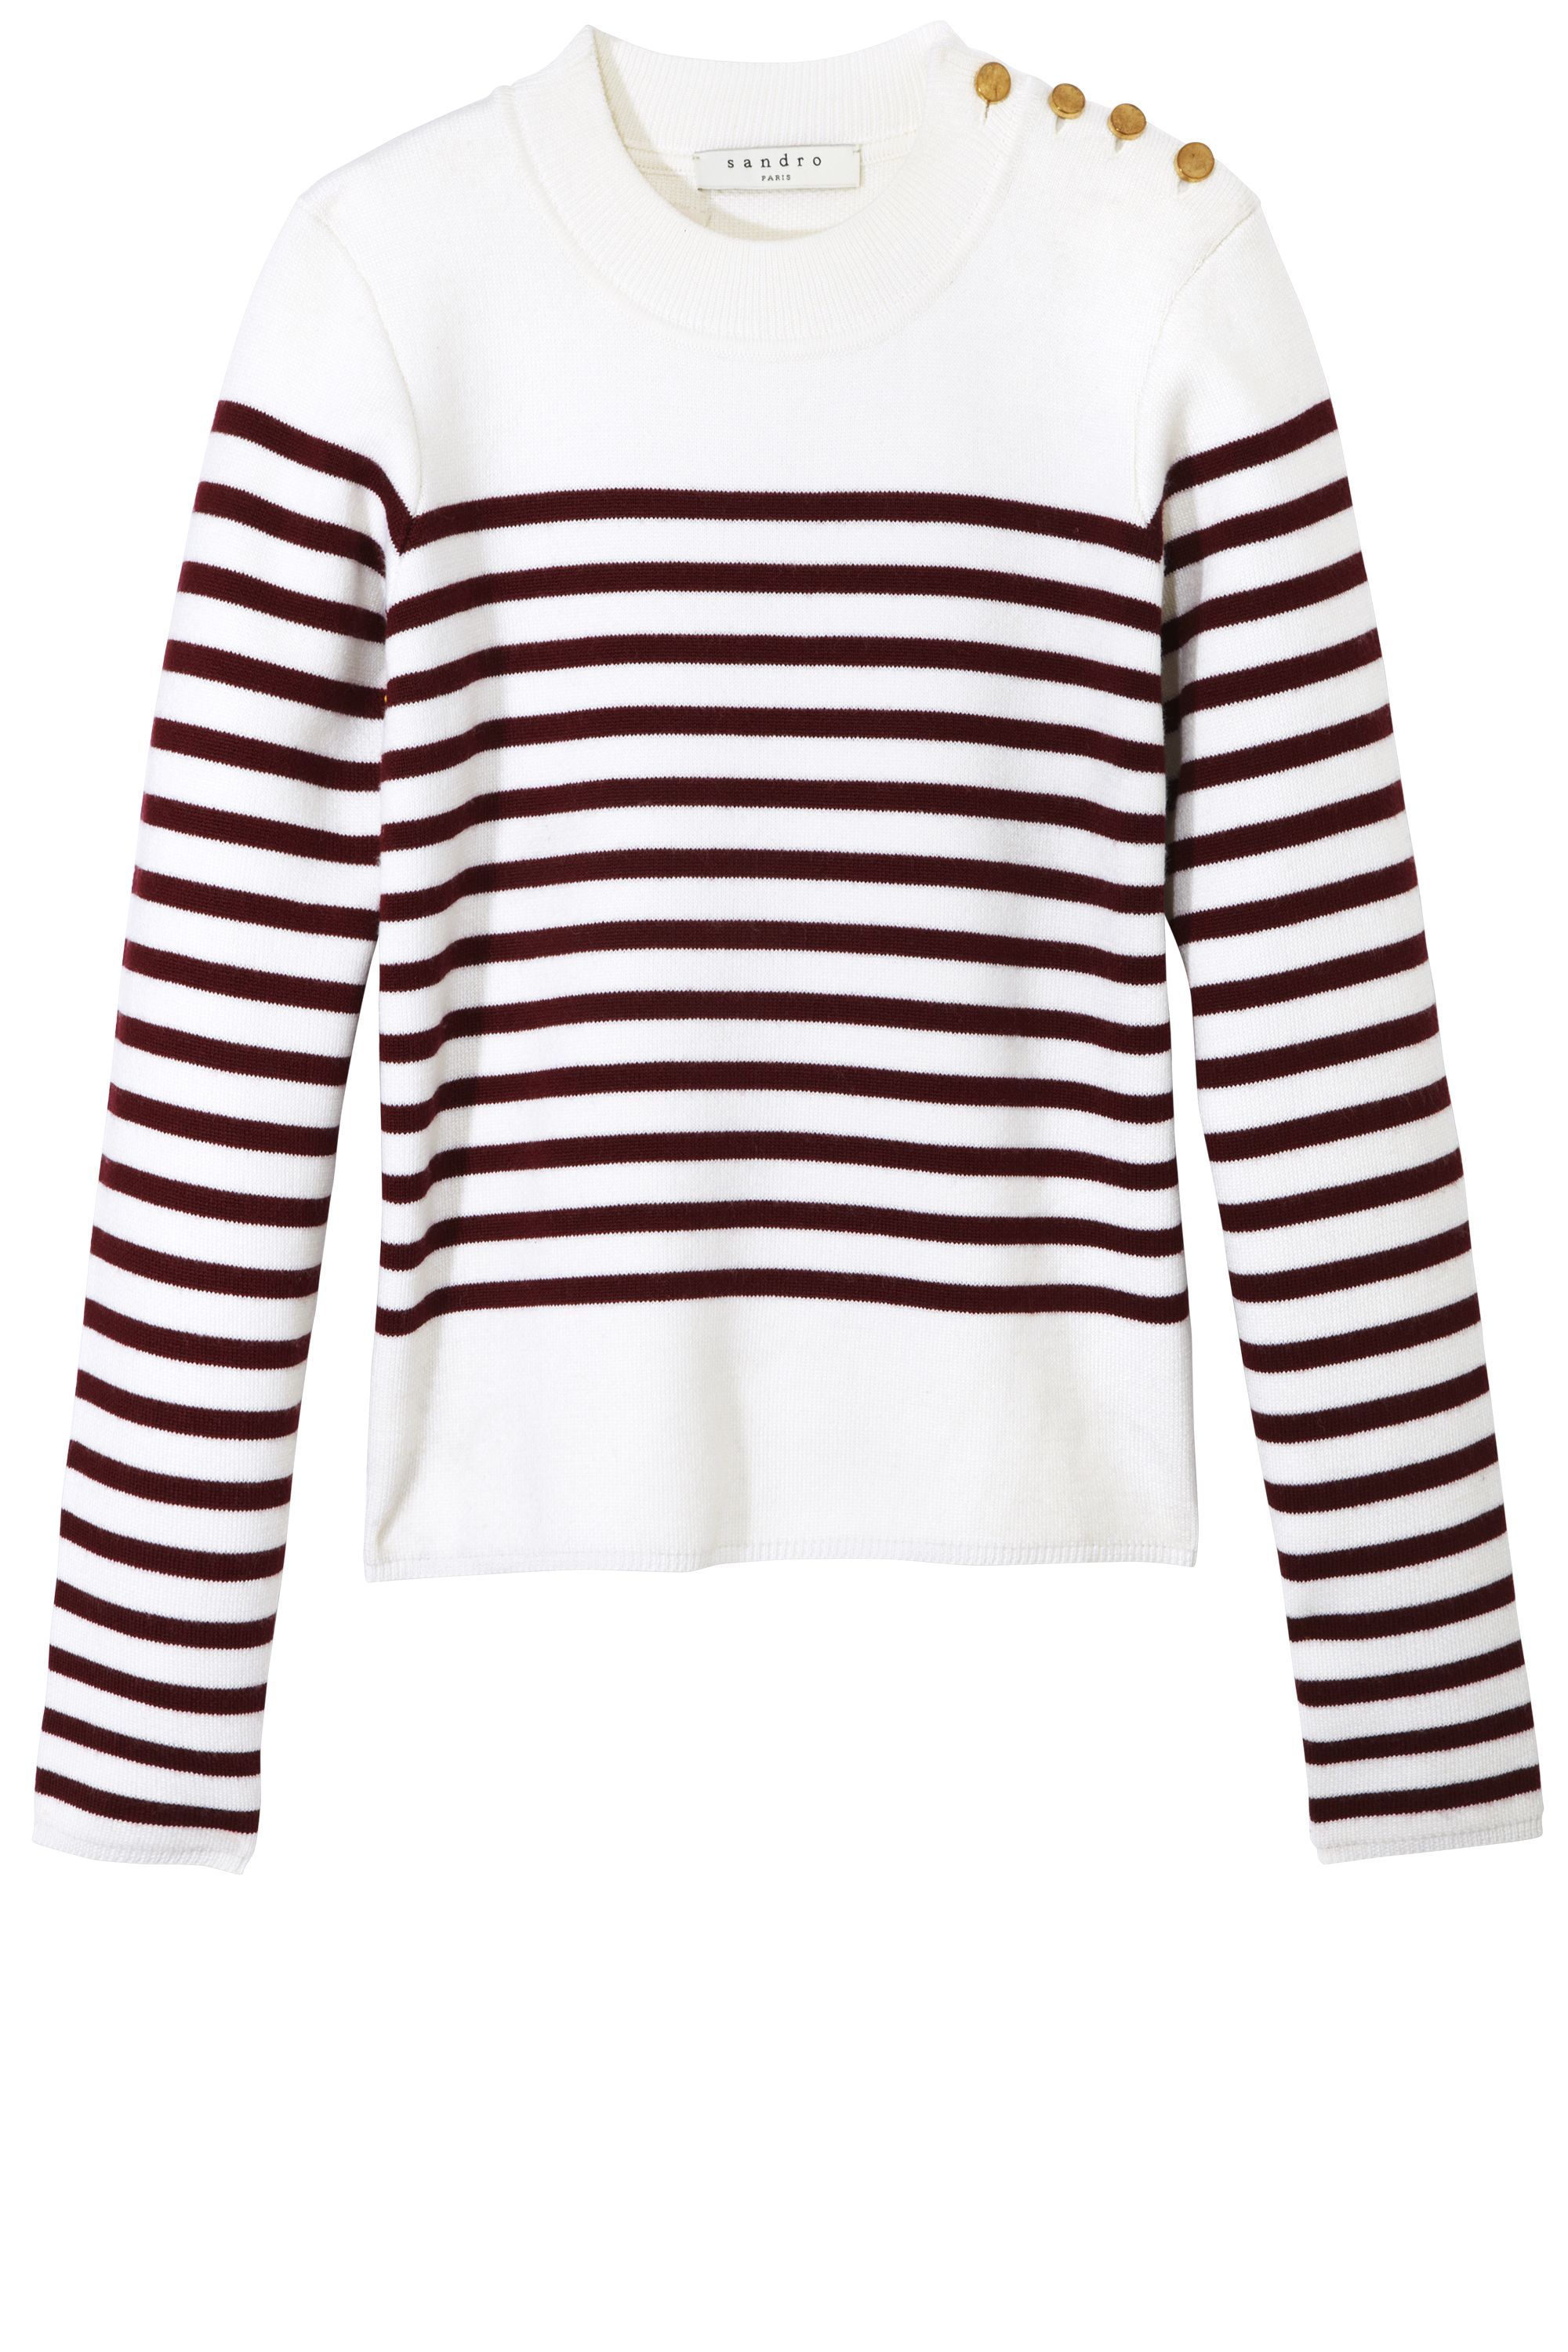 """<p><strong>Sandro</strong> sweater, $250, <a href=""""http://us.sandro-paris.com/"""" target=""""_blank"""">us.sandro-paris.com</a>.</p>"""